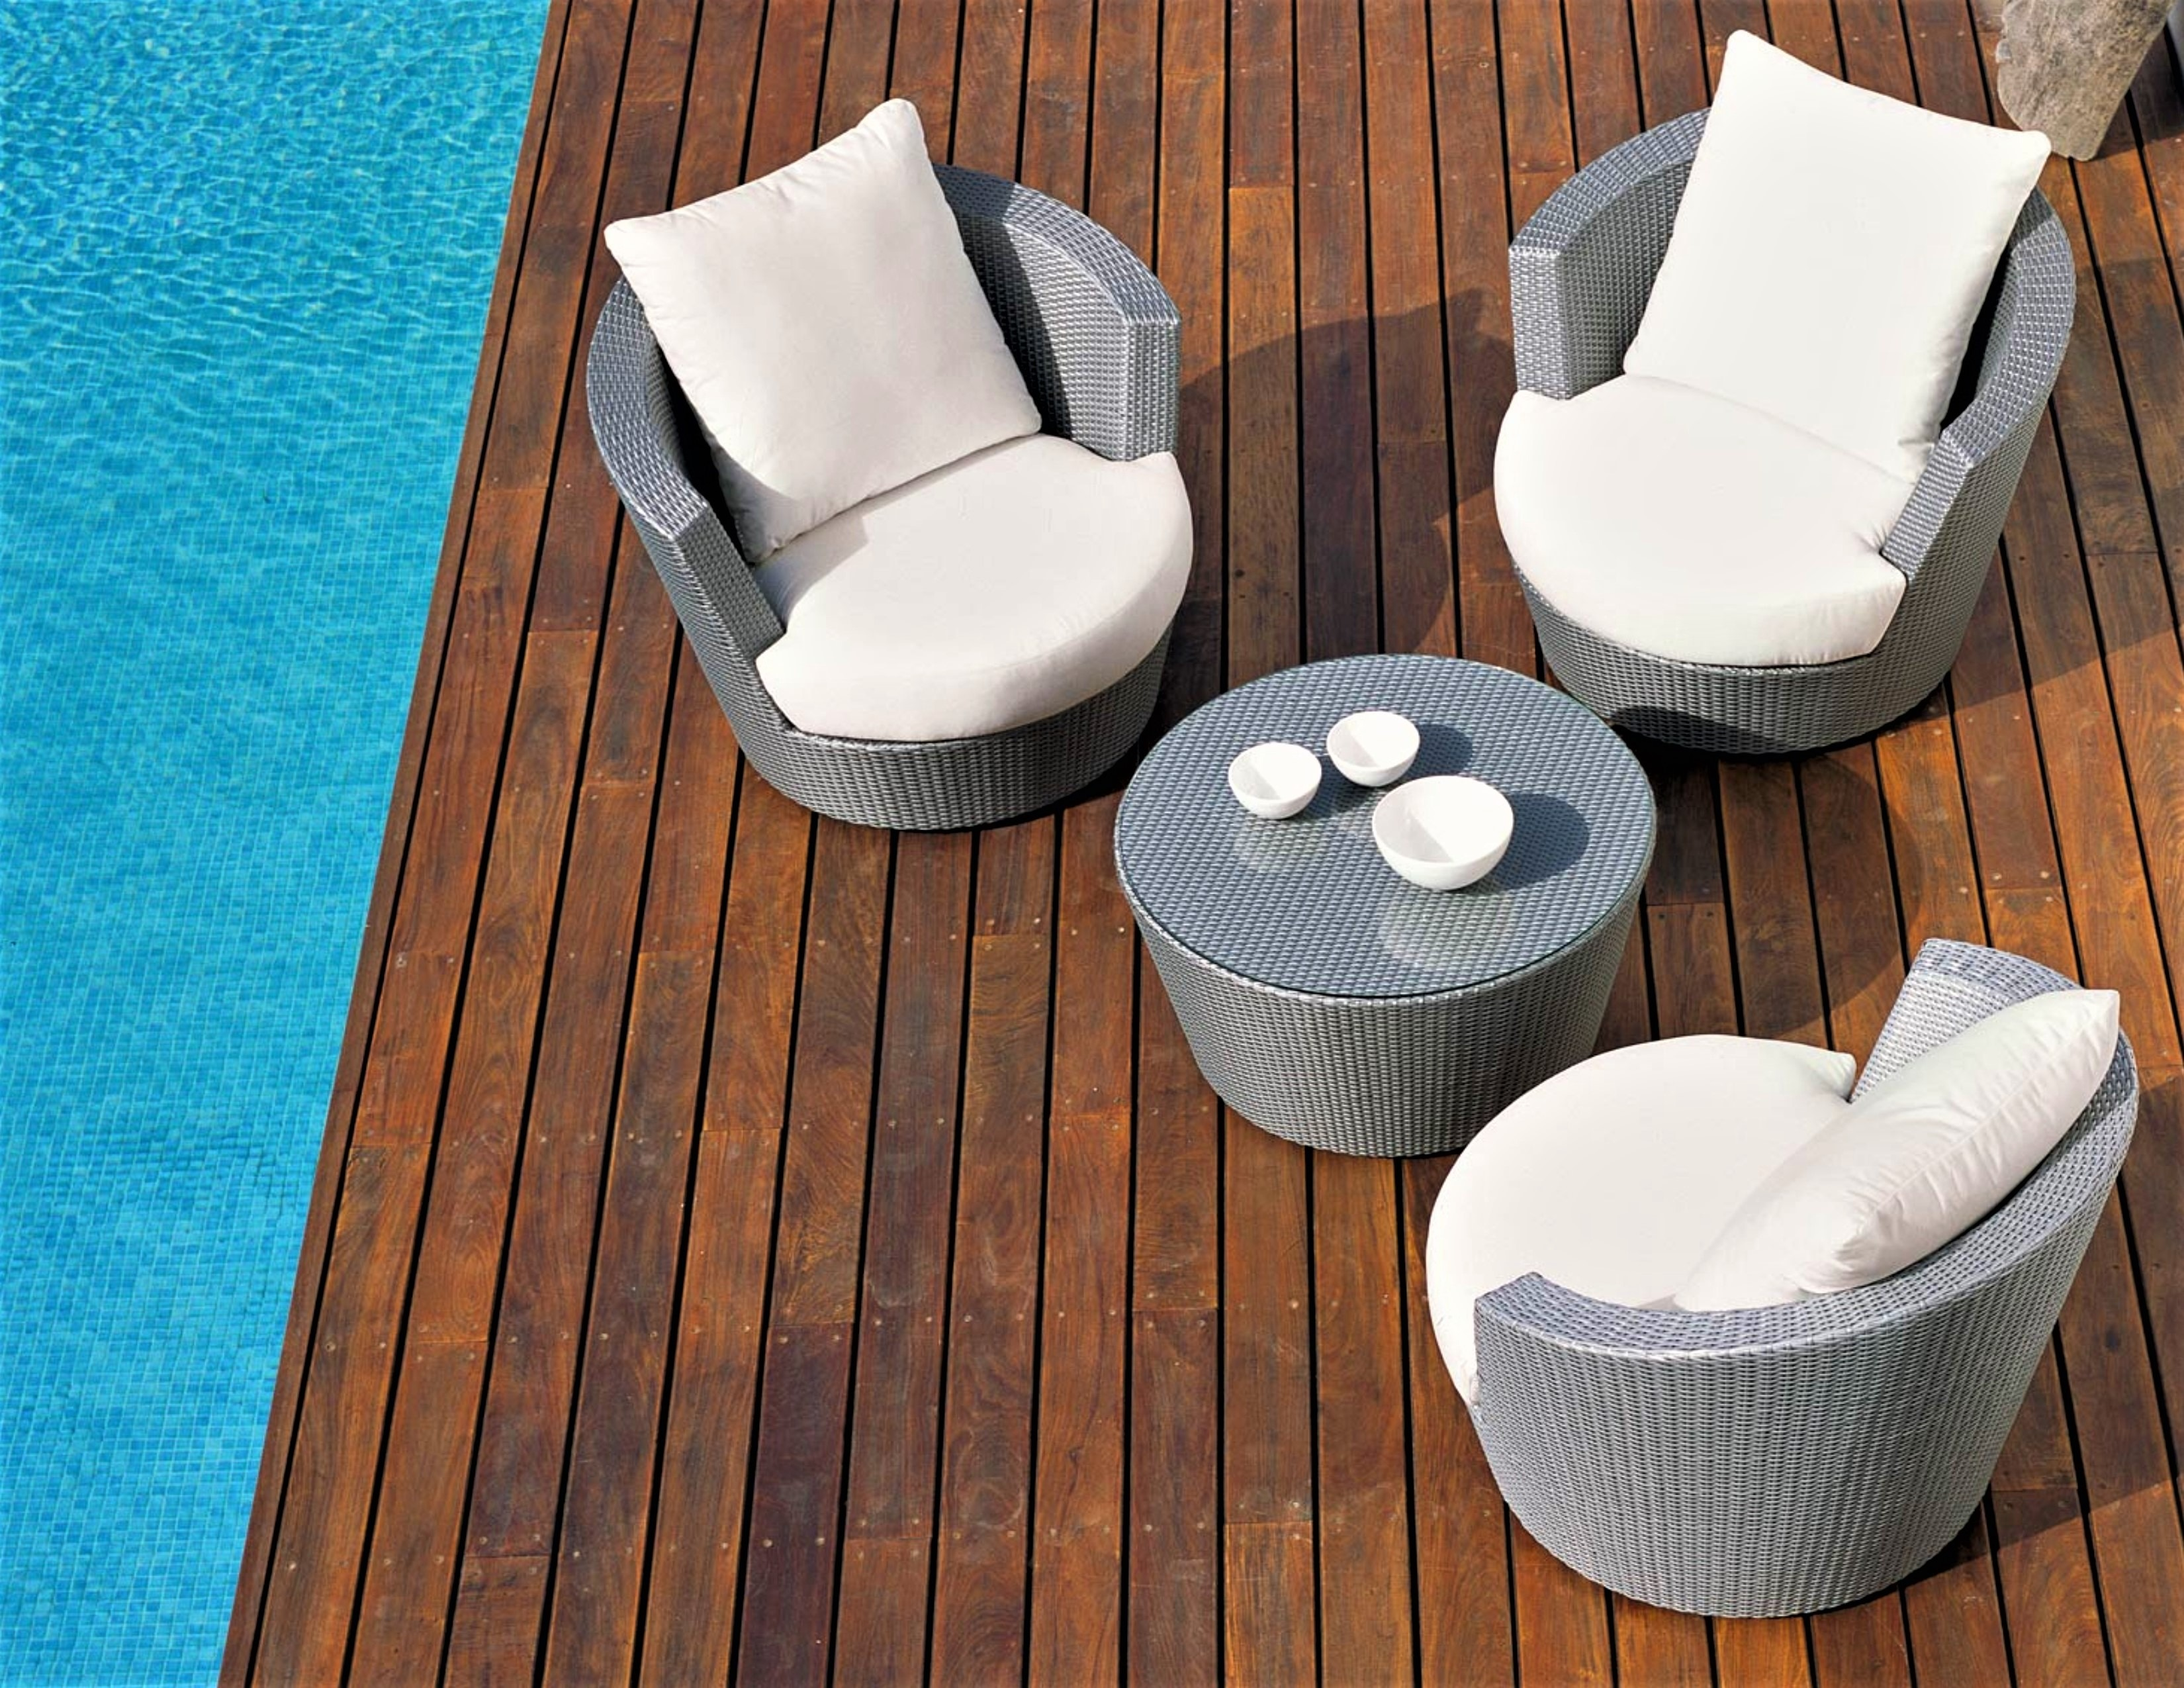 Eden Roc Swivel Club Chair by Rausch - Couture Outdoor